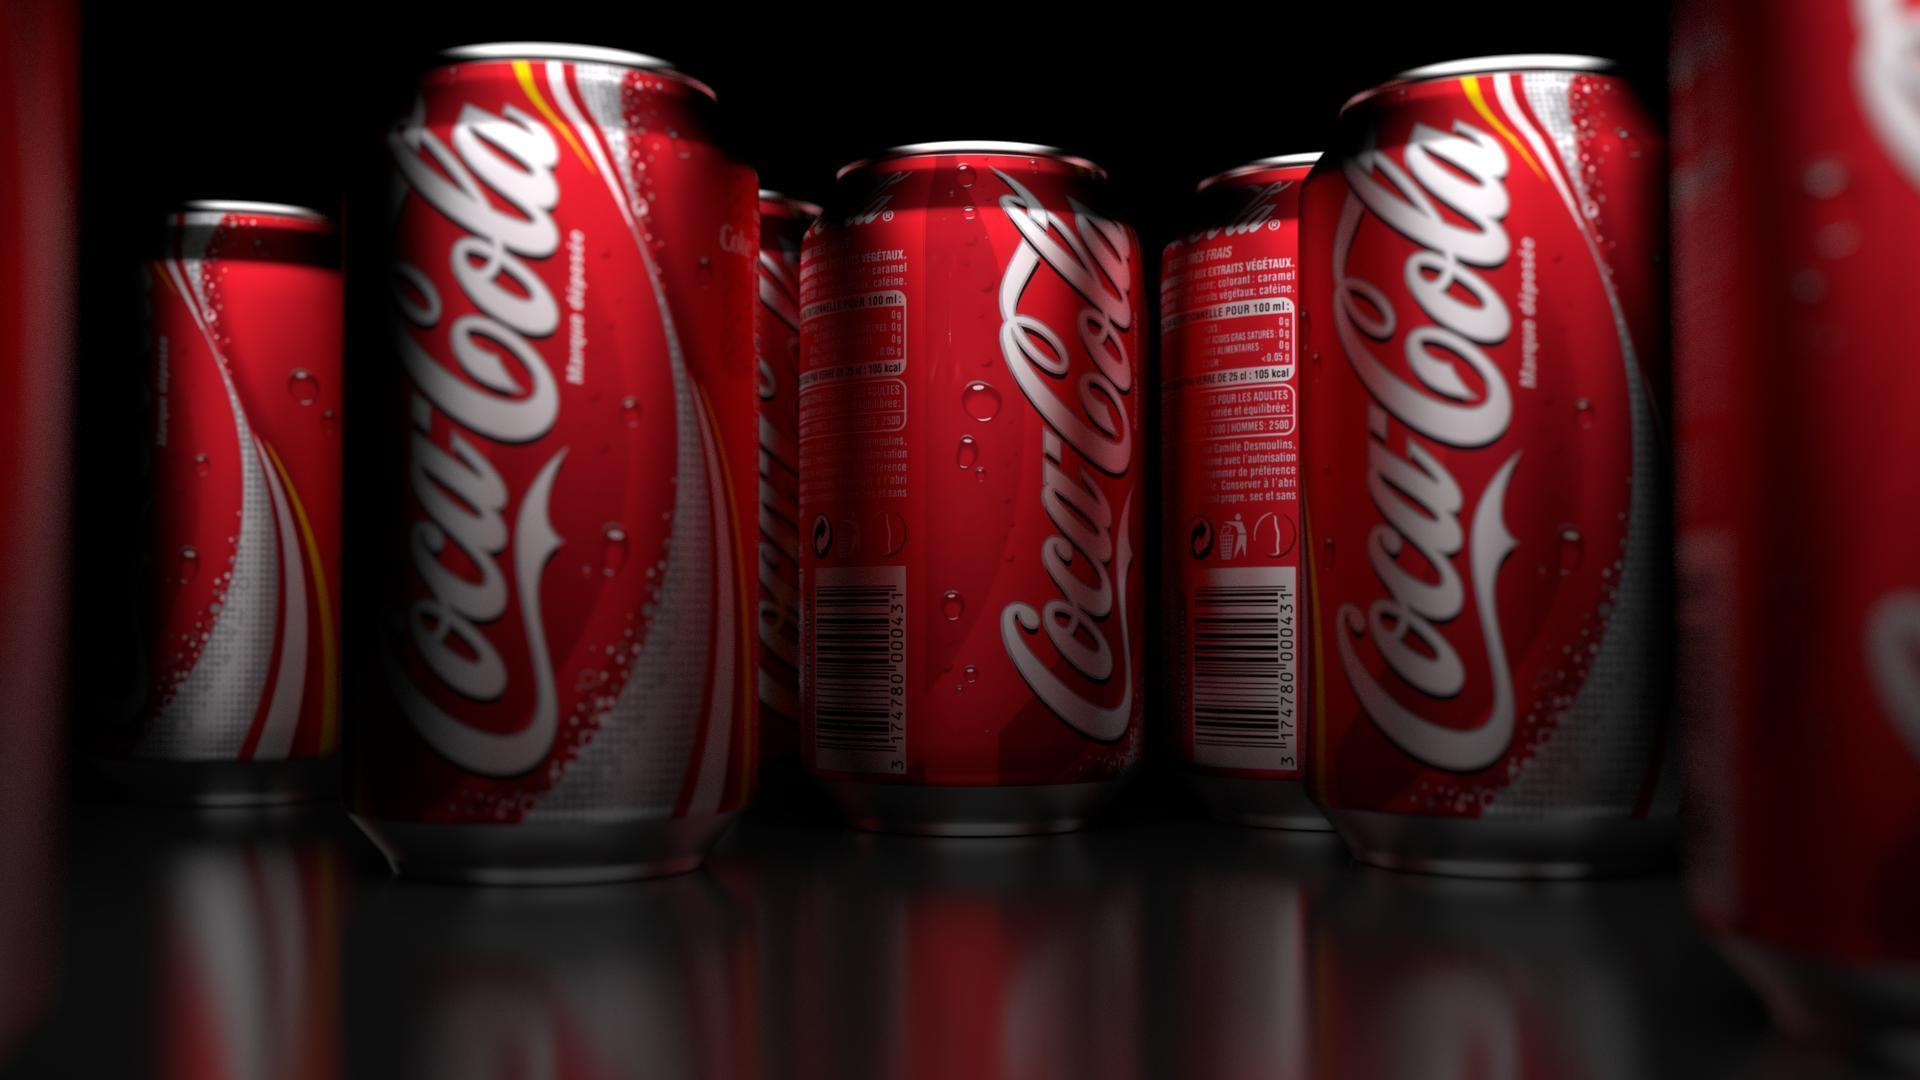 Coca-Cola Wallpaper by racerxonclar on DeviantArt